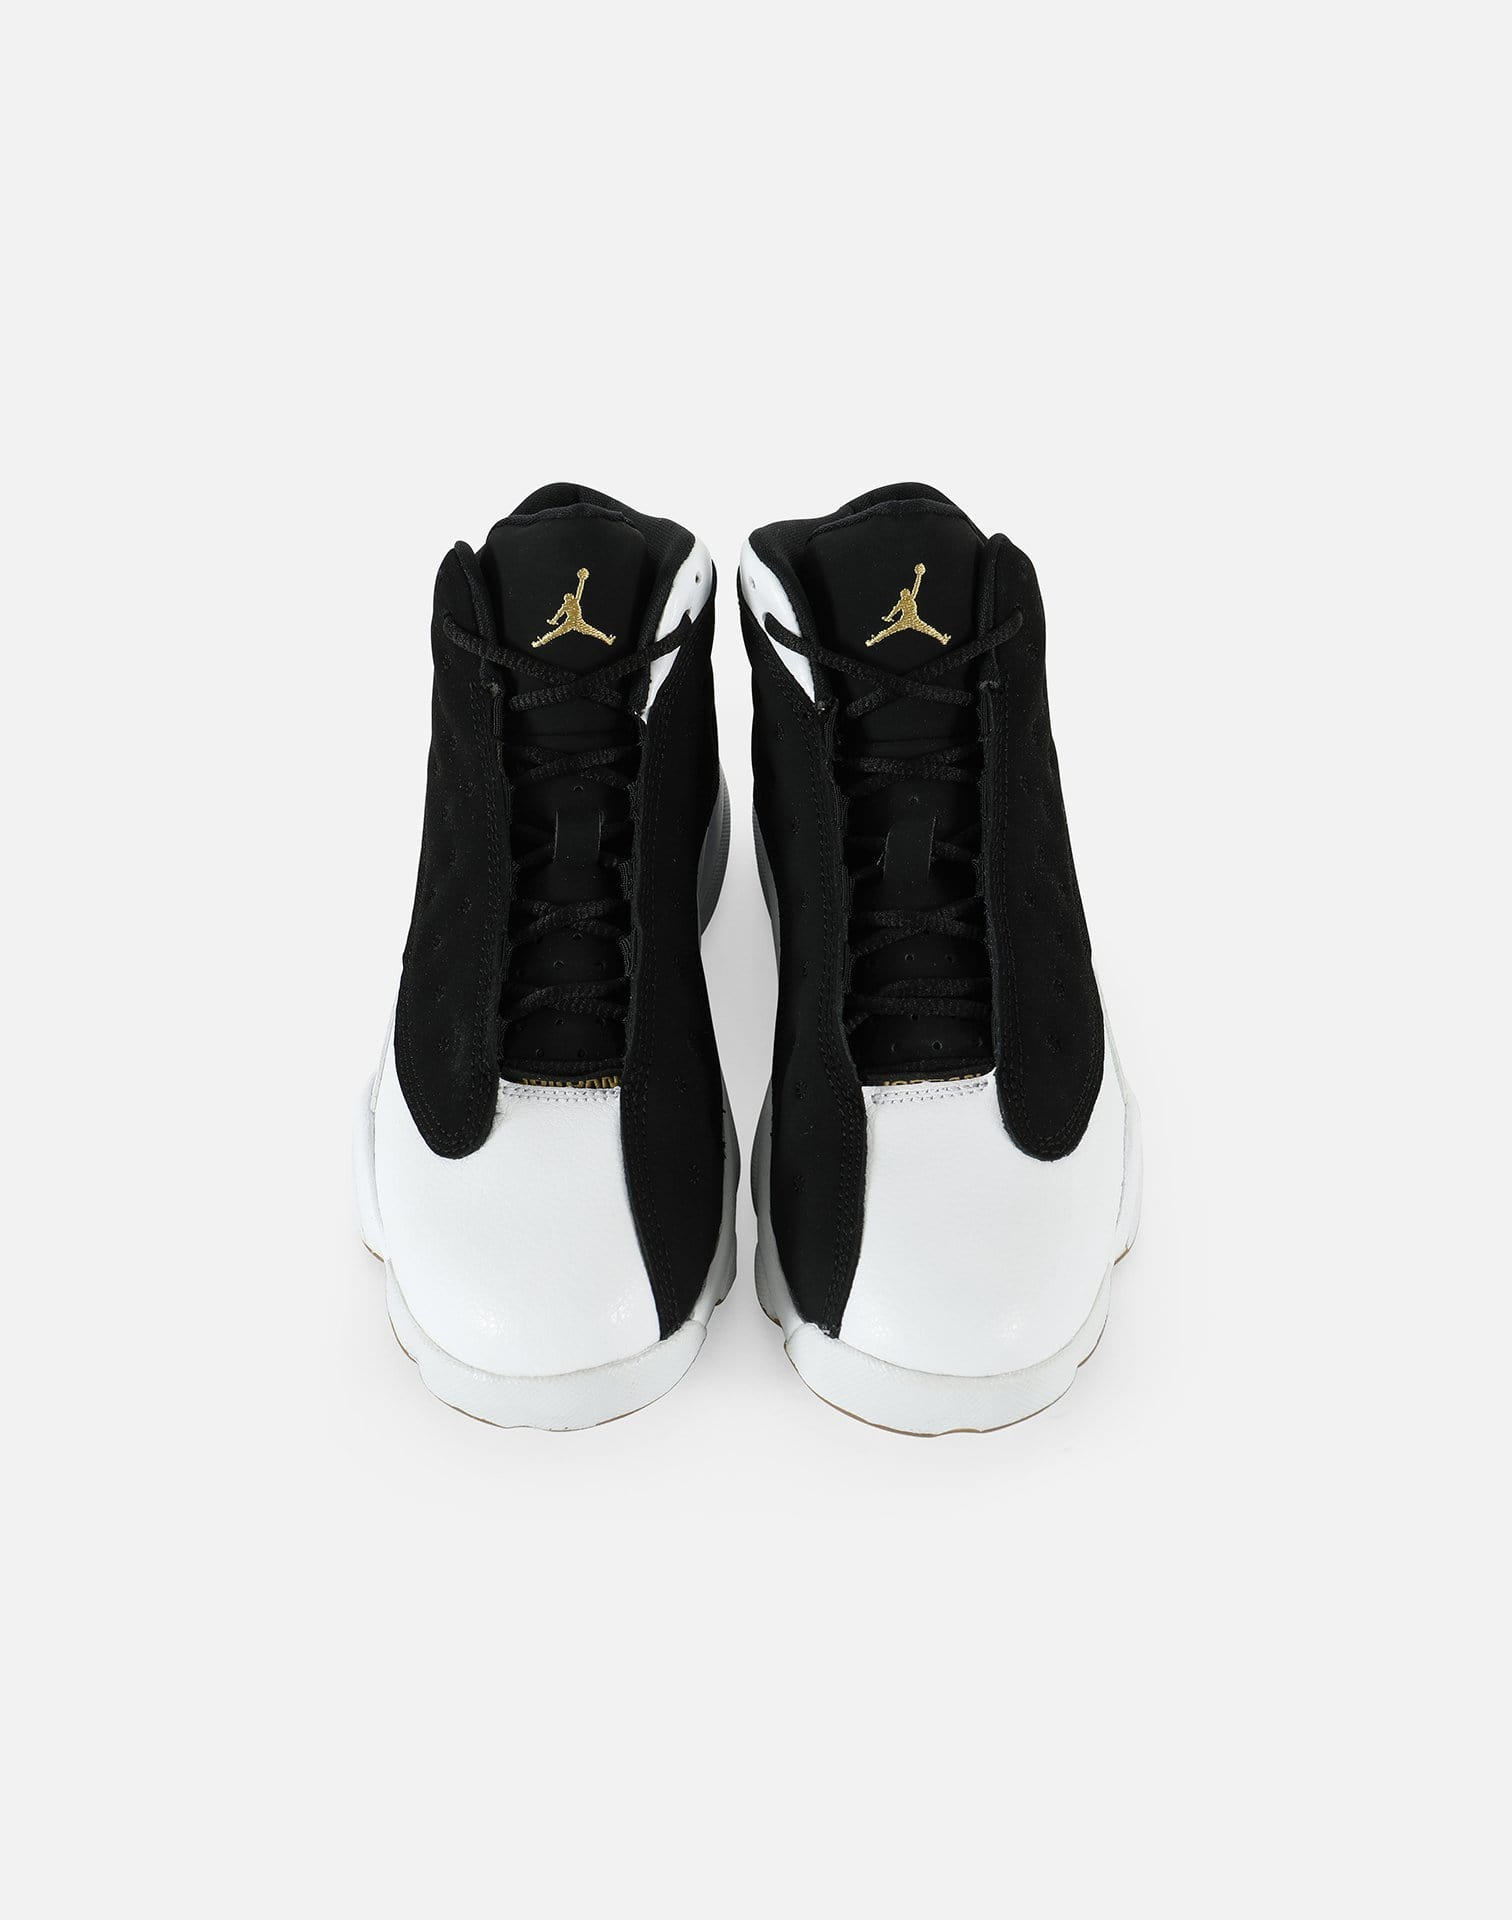 New Air Jordan Kid/'s Retro 13 Black////Metallic Gold-White Shoes 439669-021 PS